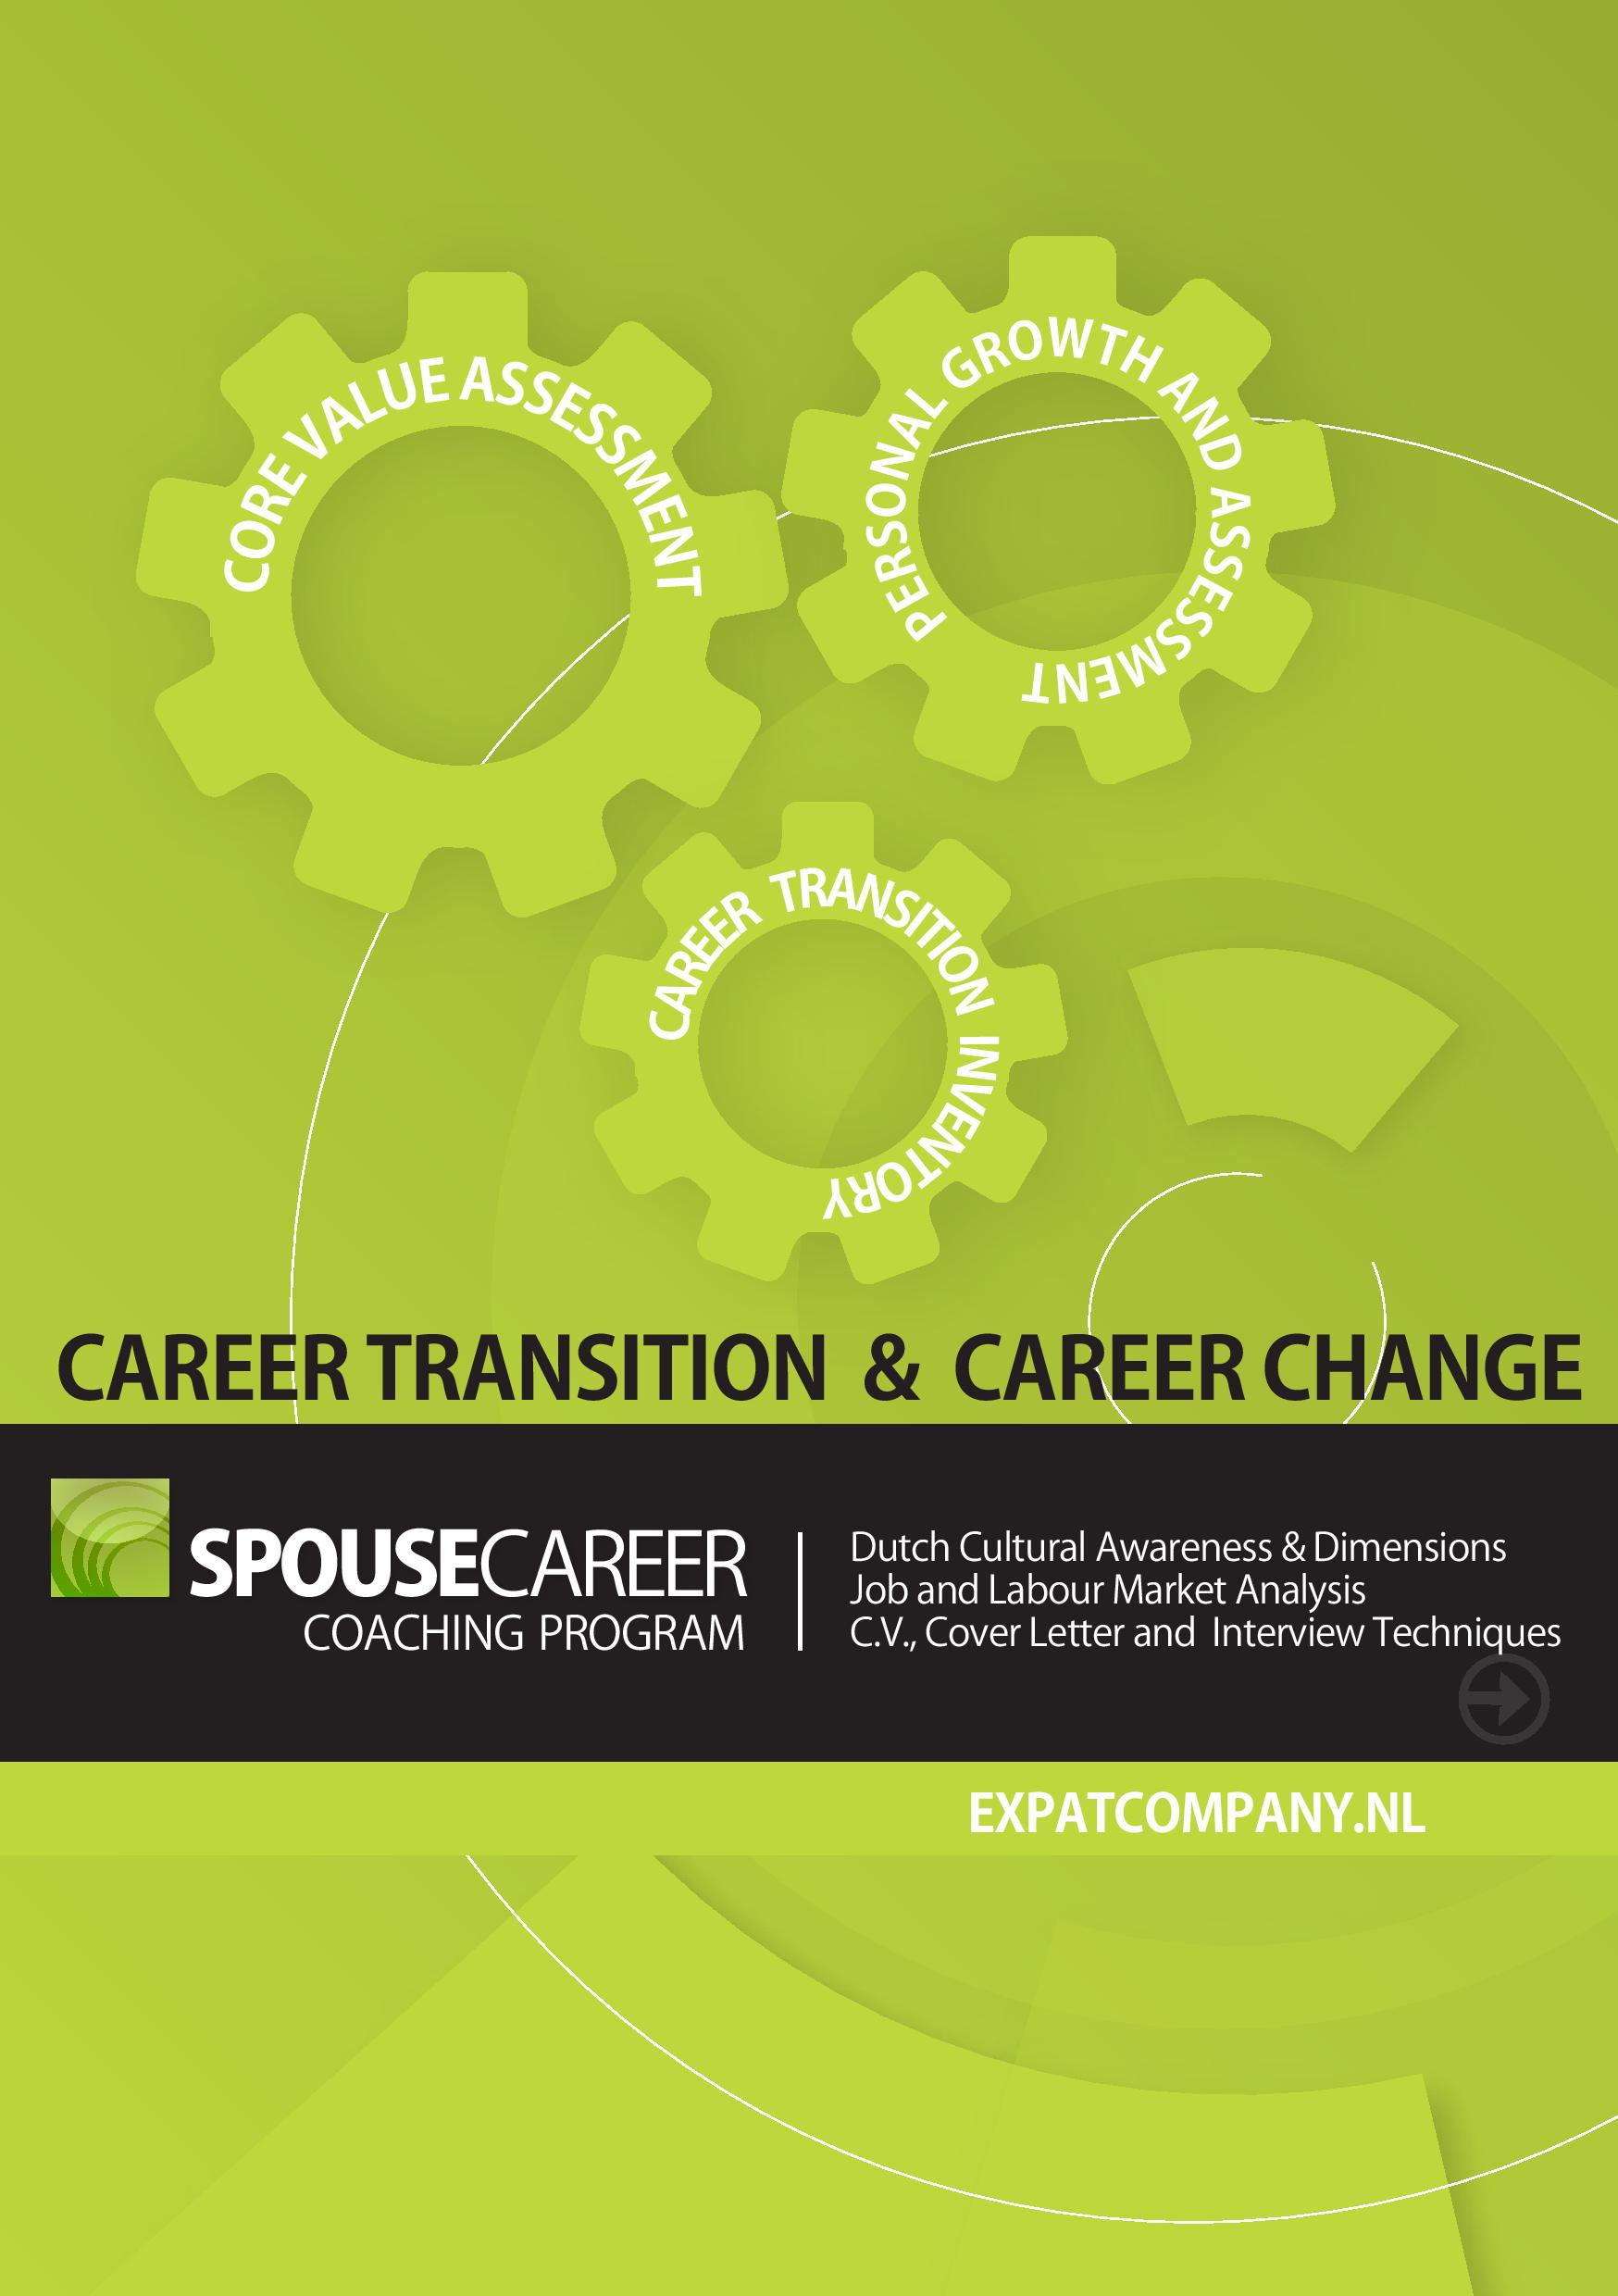 Career_transition_career_change_web-page-001.jpg